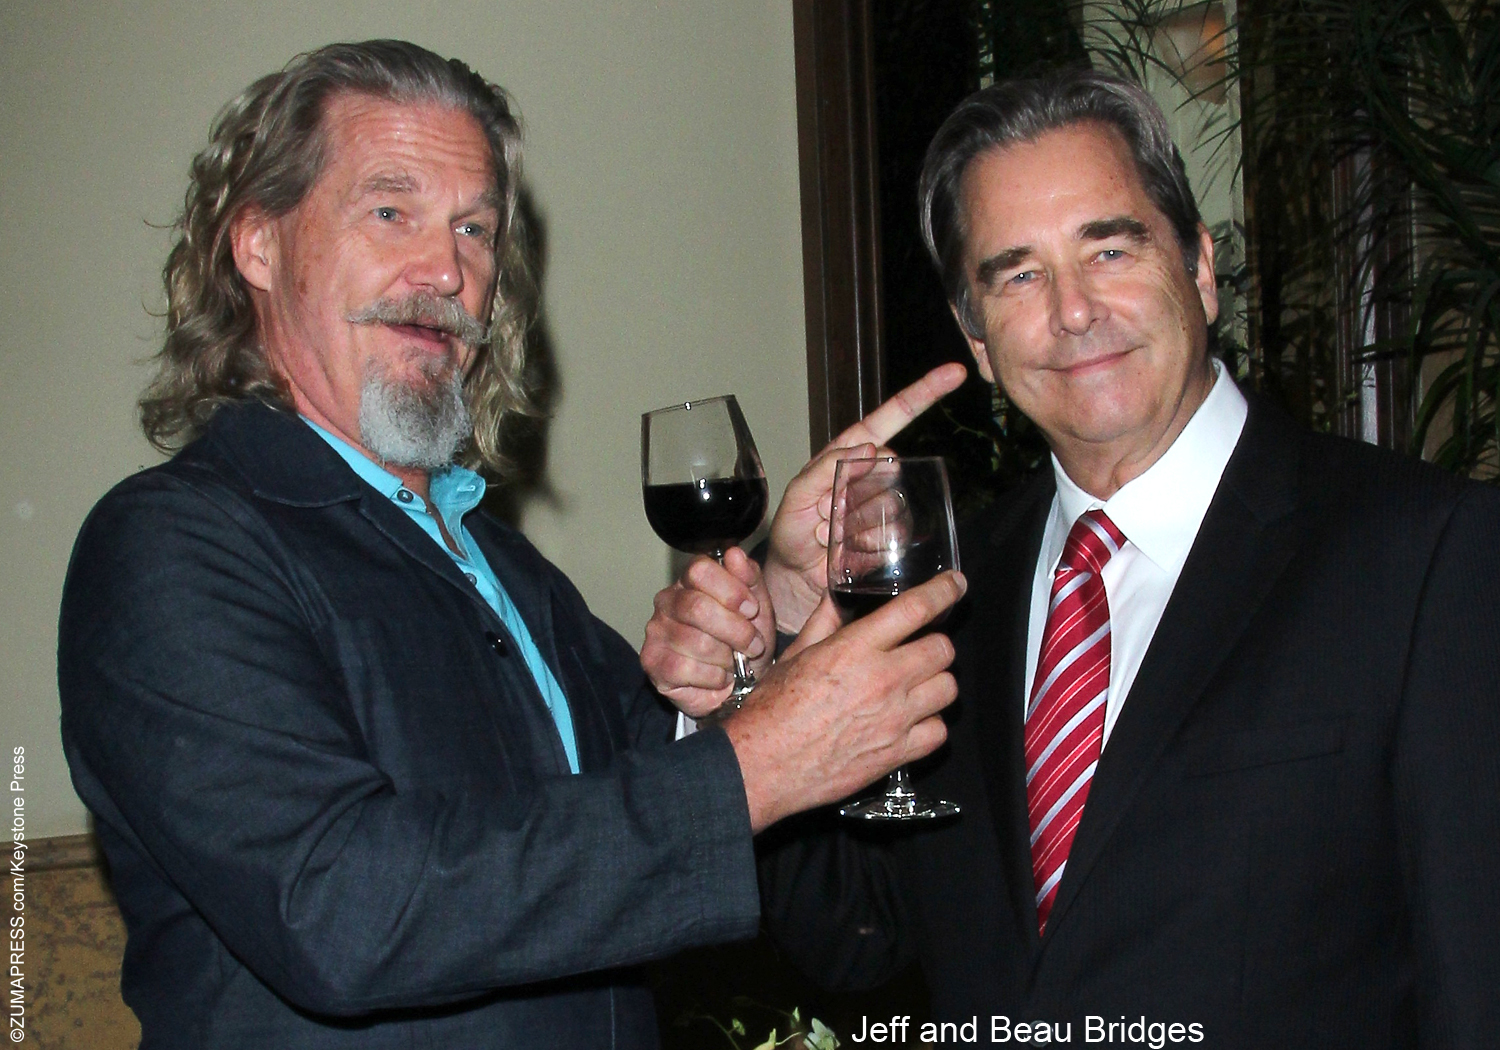 Beau and Jeff Bridges ...